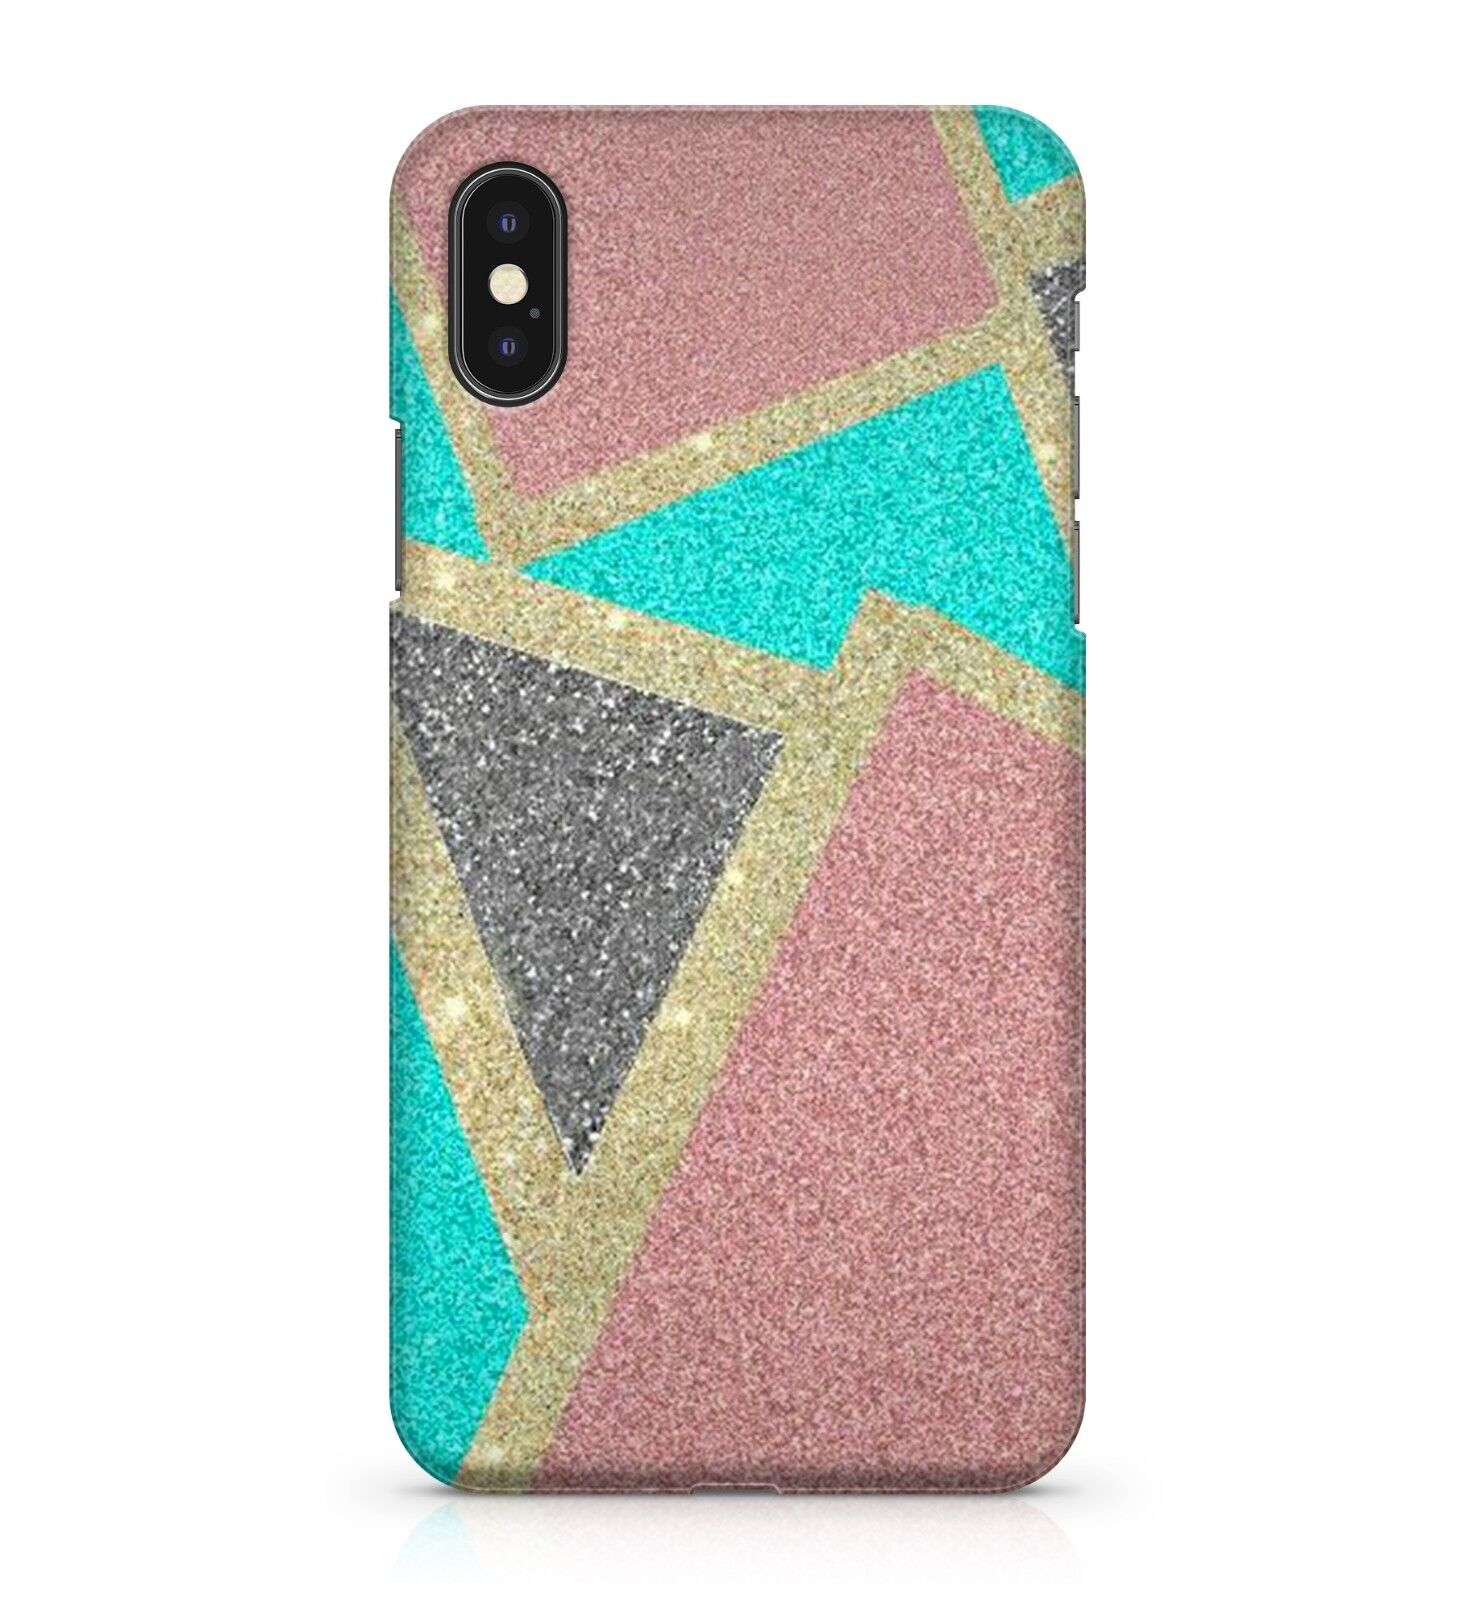 Details About Gold Pink Black Blue Shapes Art Abstract Cool Sparkling Effect Phone Case Cover